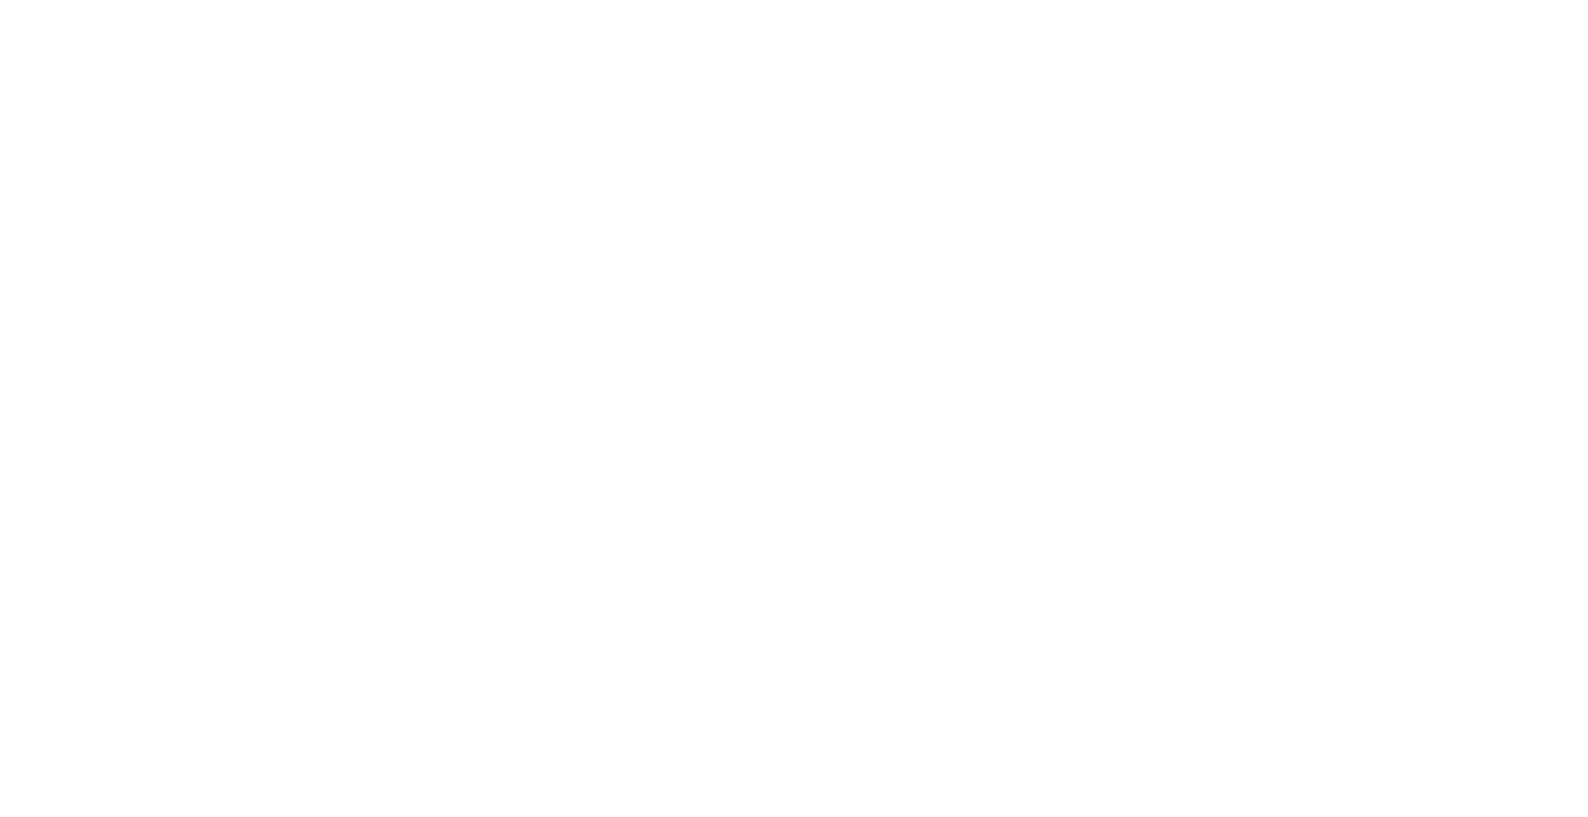 West End at City Walk